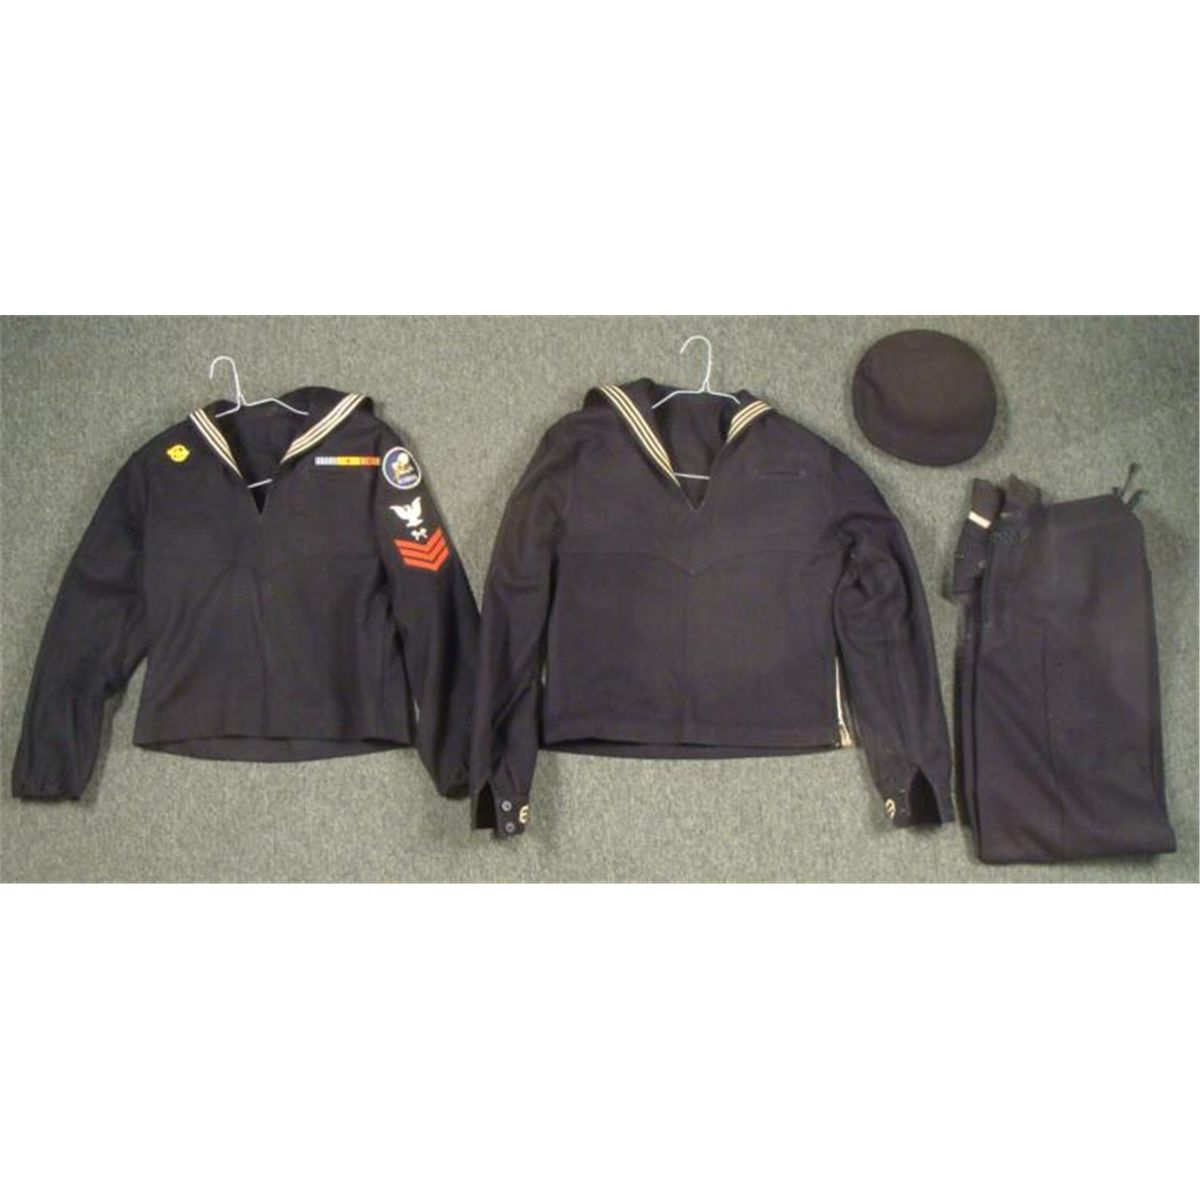 4 PC WWII US NAVY SEEBEES COMPLETE UNIFORM